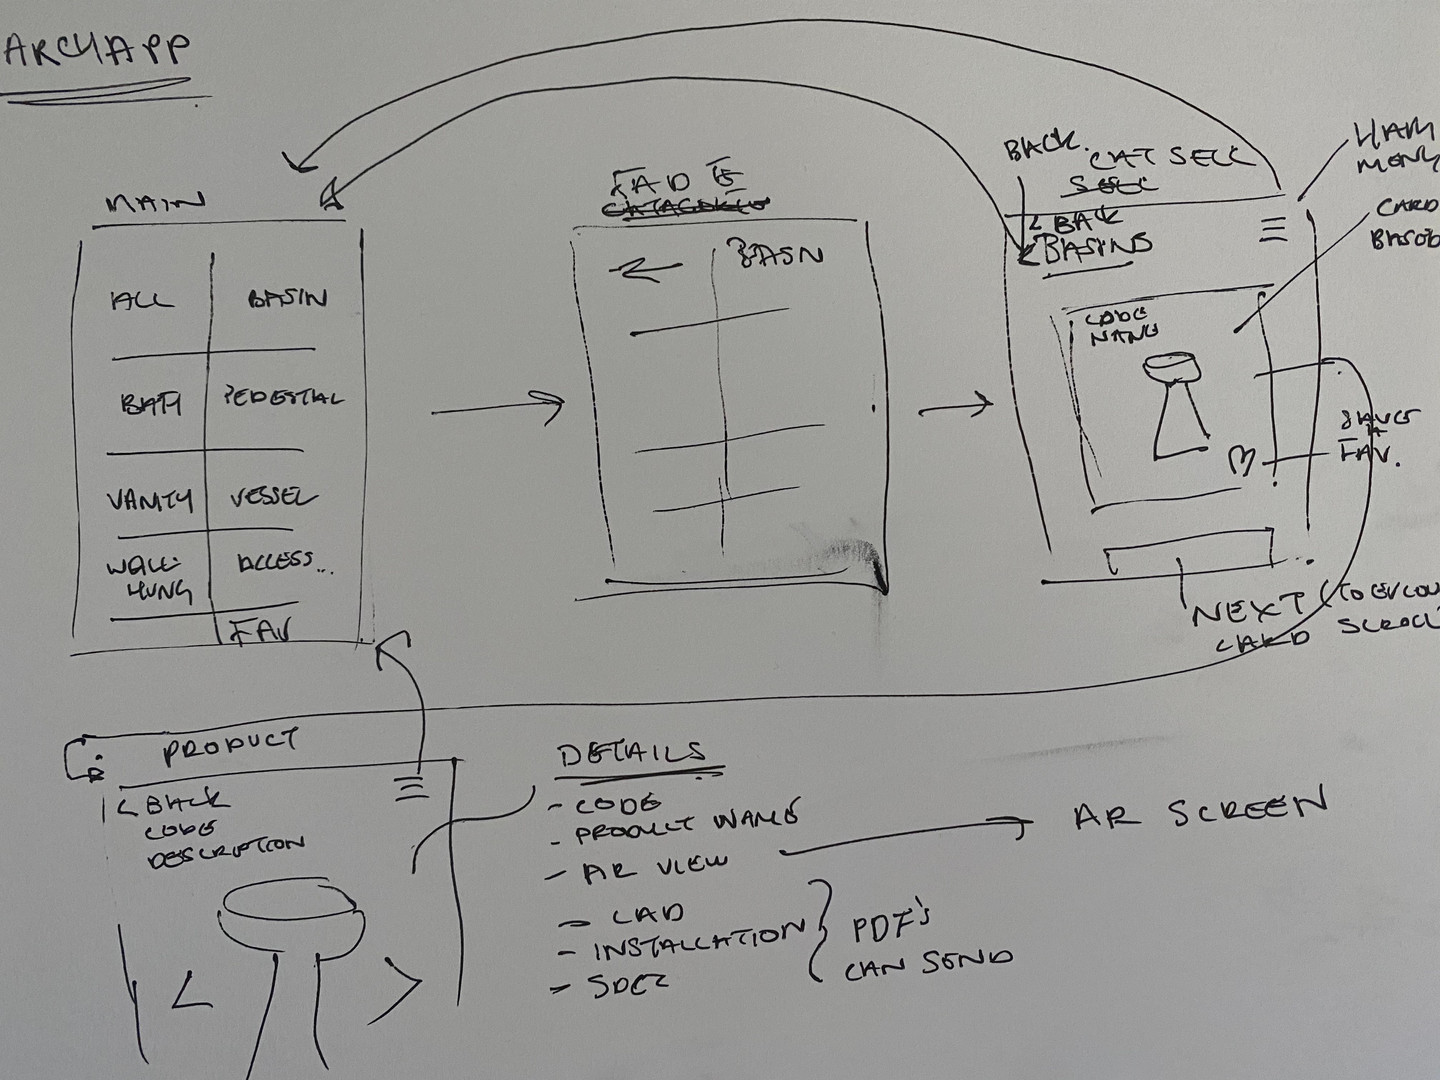 Part of the initial wire frame concept for the architect app.